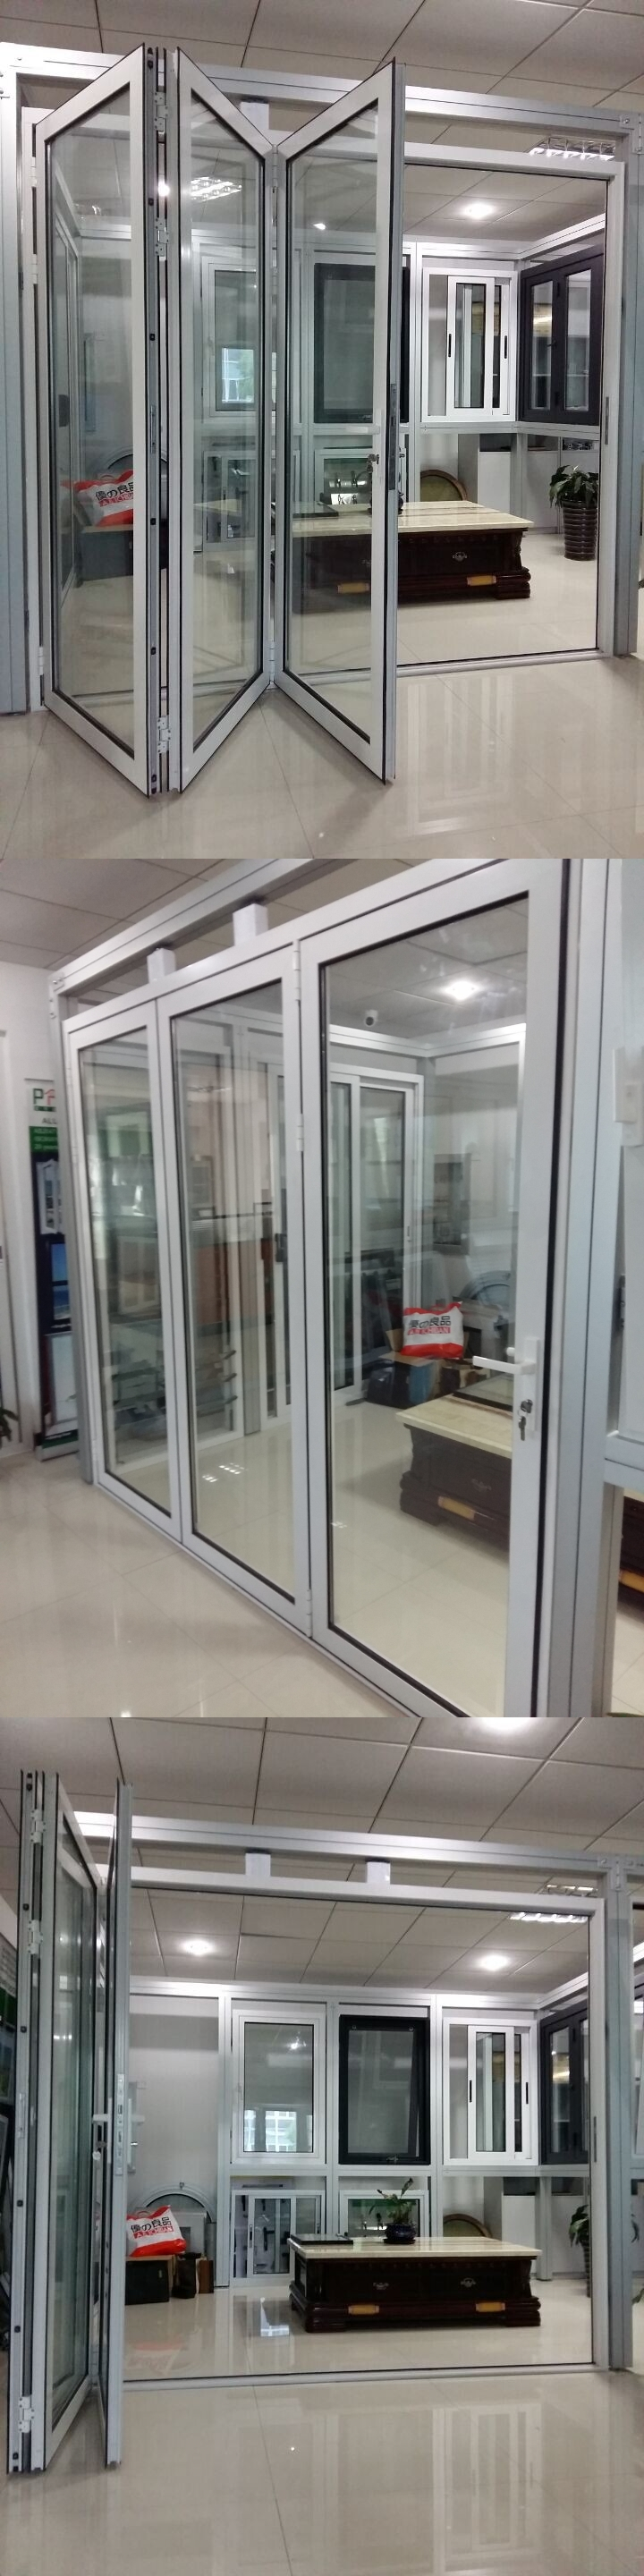 Double Low E Glass Insulated Aluminum Interior Temporary Folding Door Buy Double Low E Glass